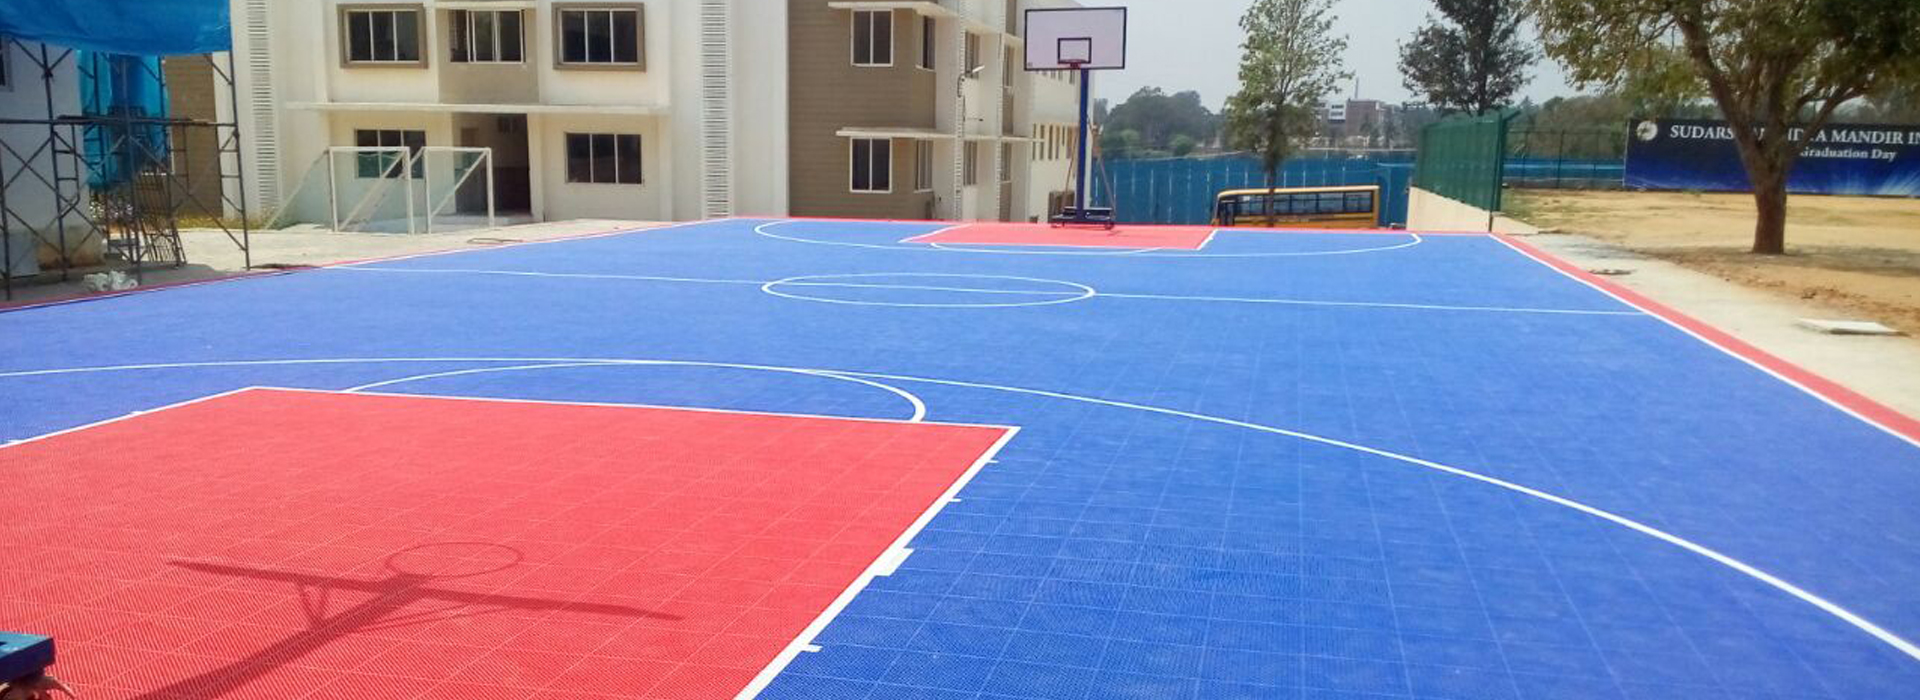 Artificial Turf for Basketball Court In Bangalore